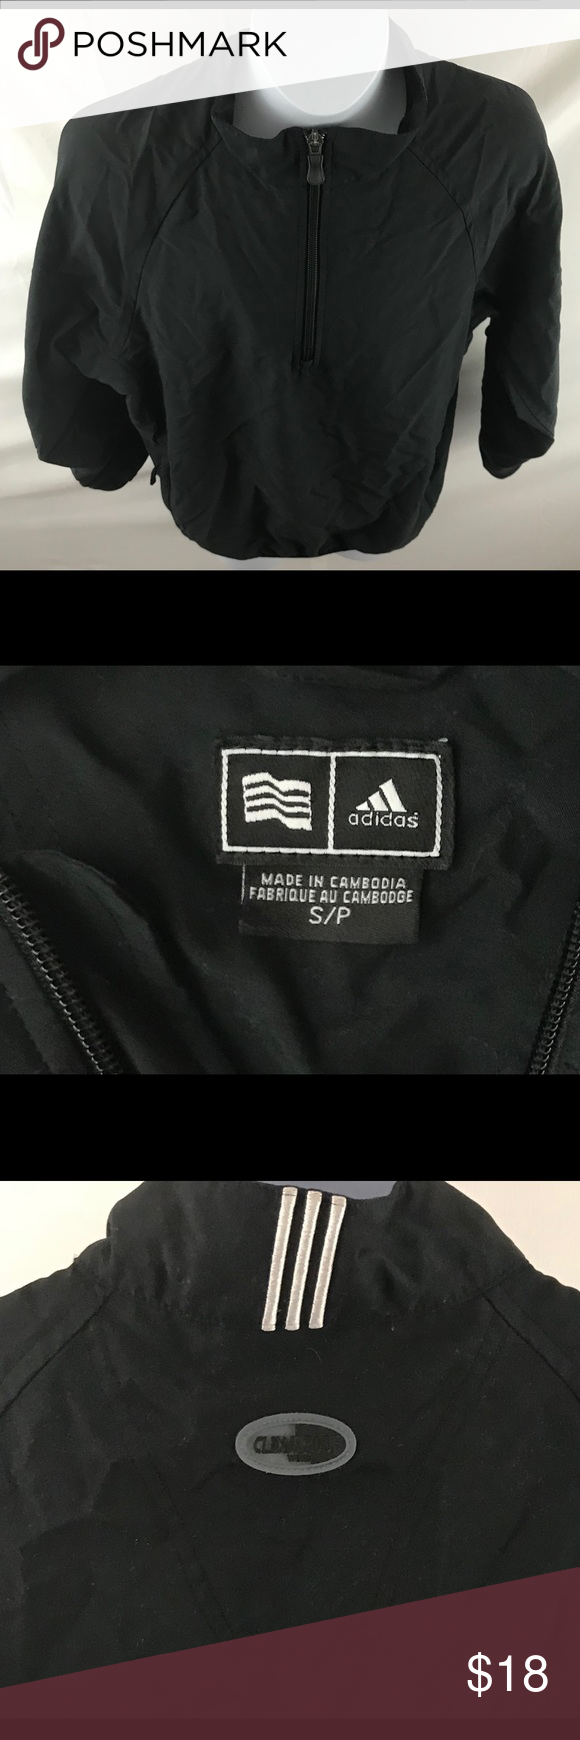 Size Small Windbreaker Boys Adidas Black bfy67g